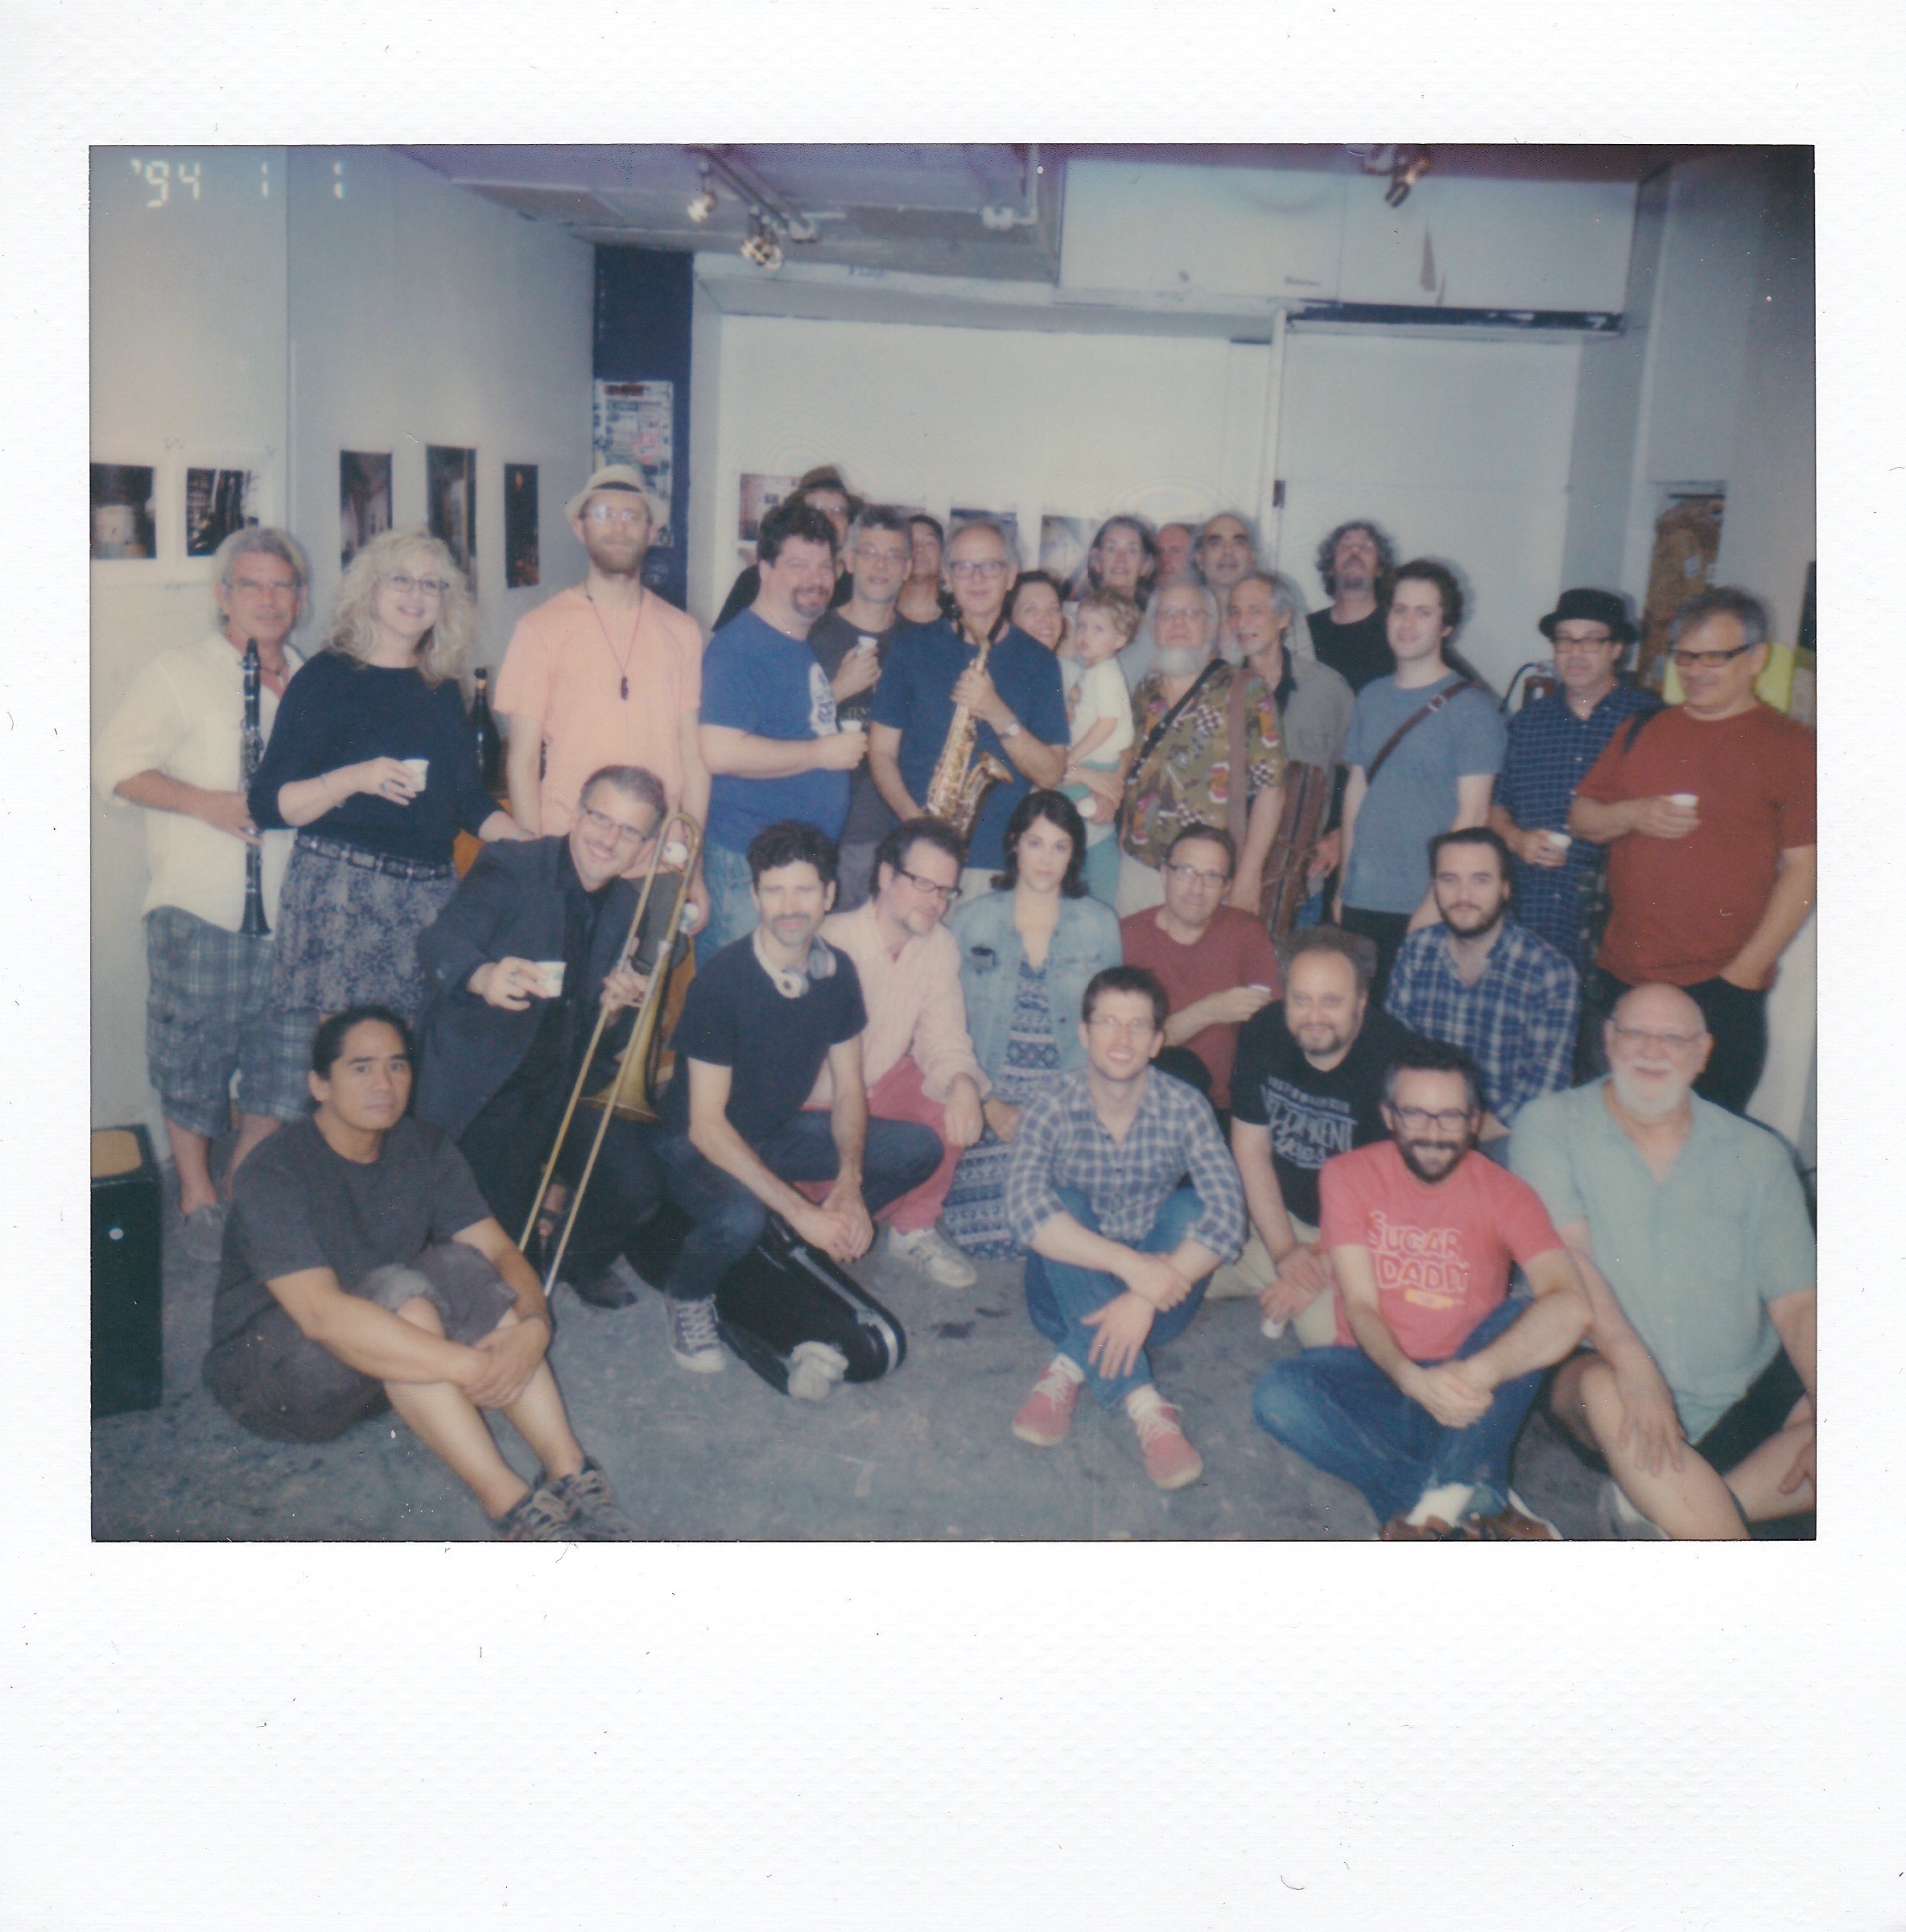 The musicians and attendees of ABC No Rio's final C.O.M.A. free Jazz concert in the original building, featuring show organizer Blaise Siwula, 6/26/16. (Photo: Nick McManus)